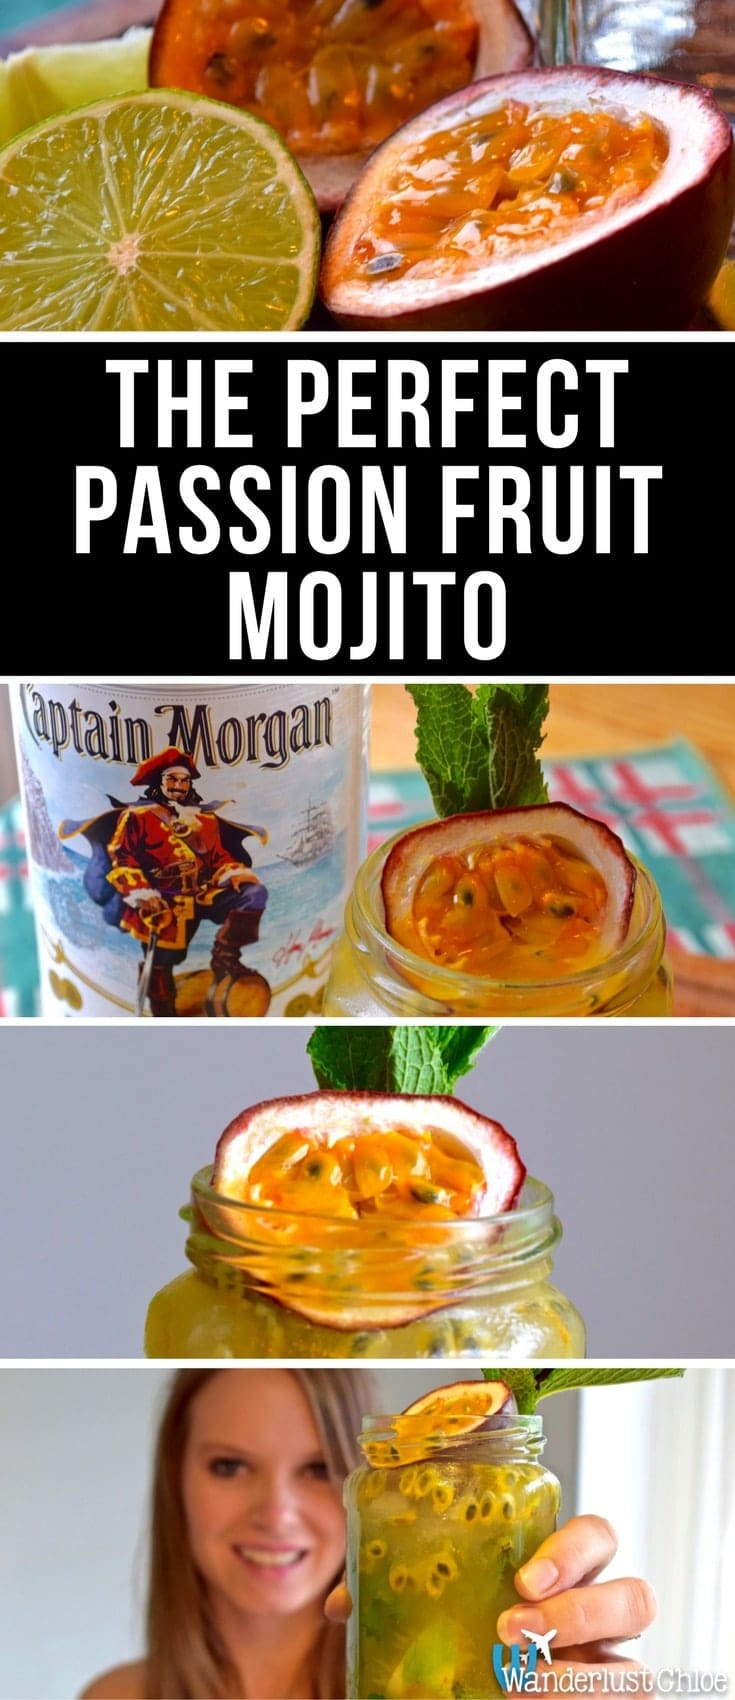 The Perfect Passion Fruit Mojito